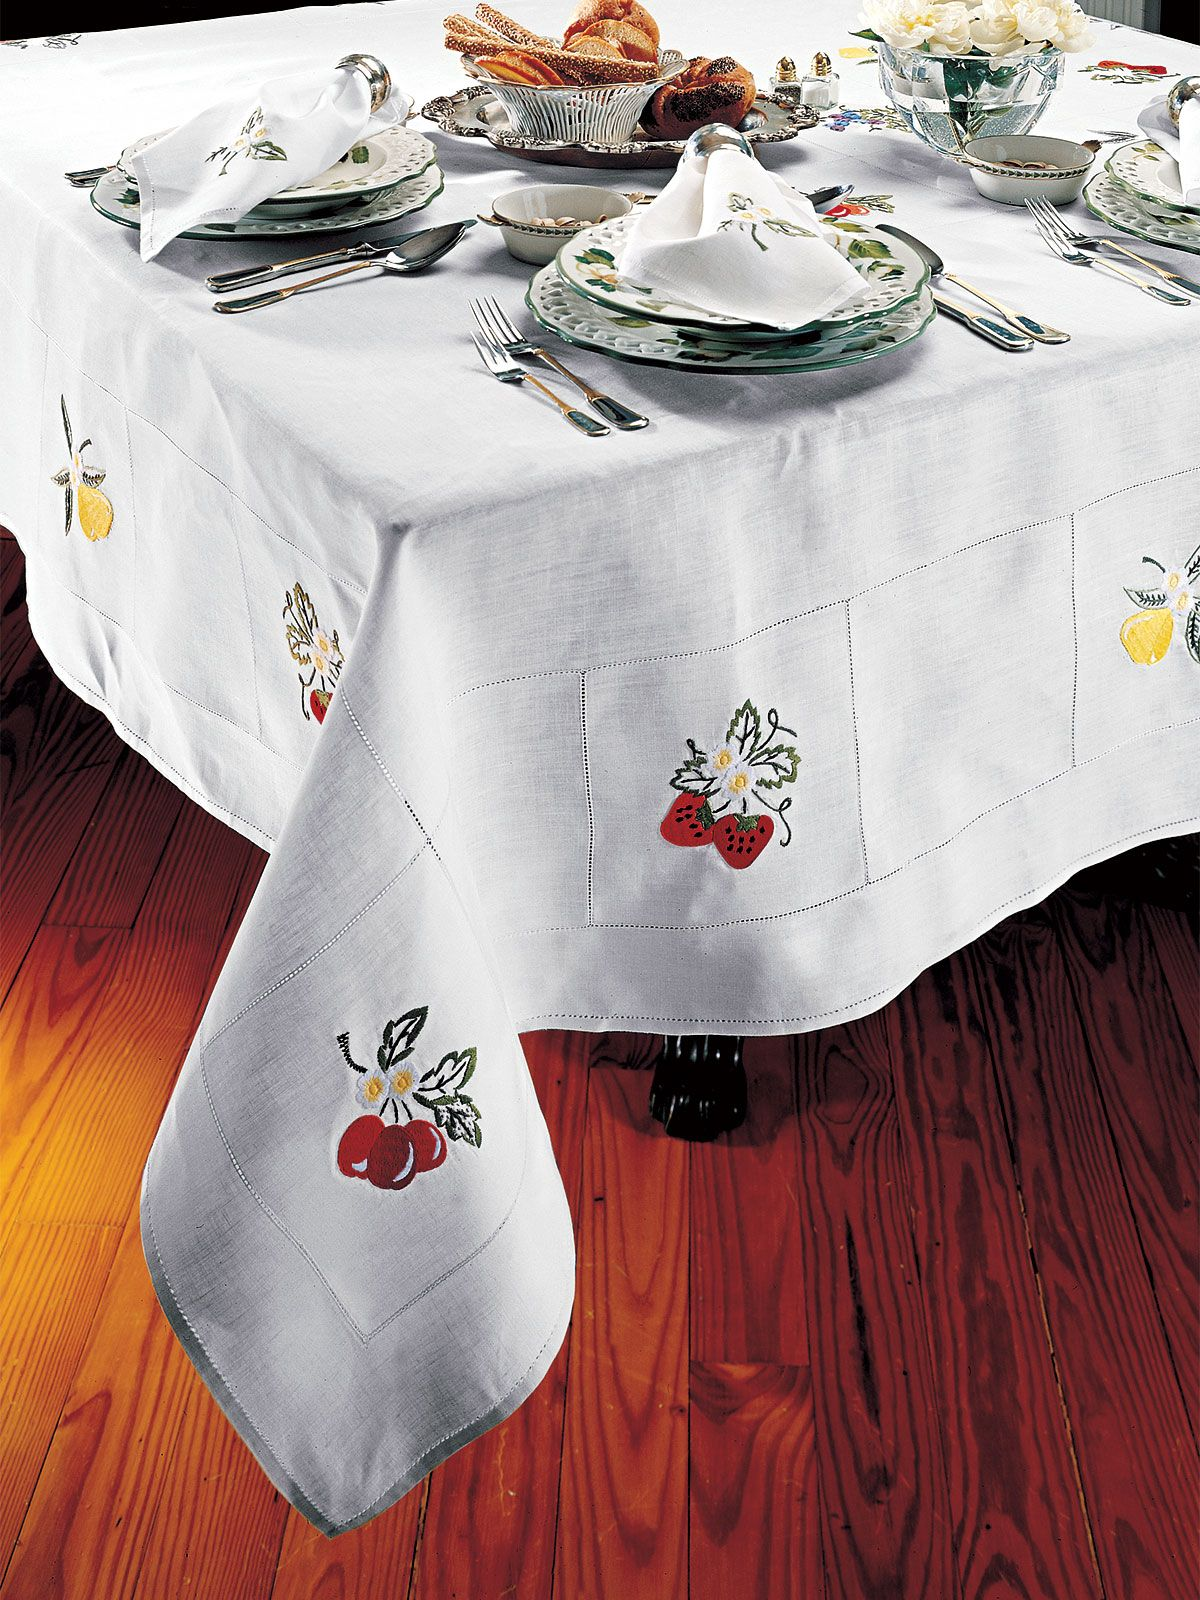 Frutta Giornini   Fine Table Linens   As Charming And Delightful As A  Favoriteu2026